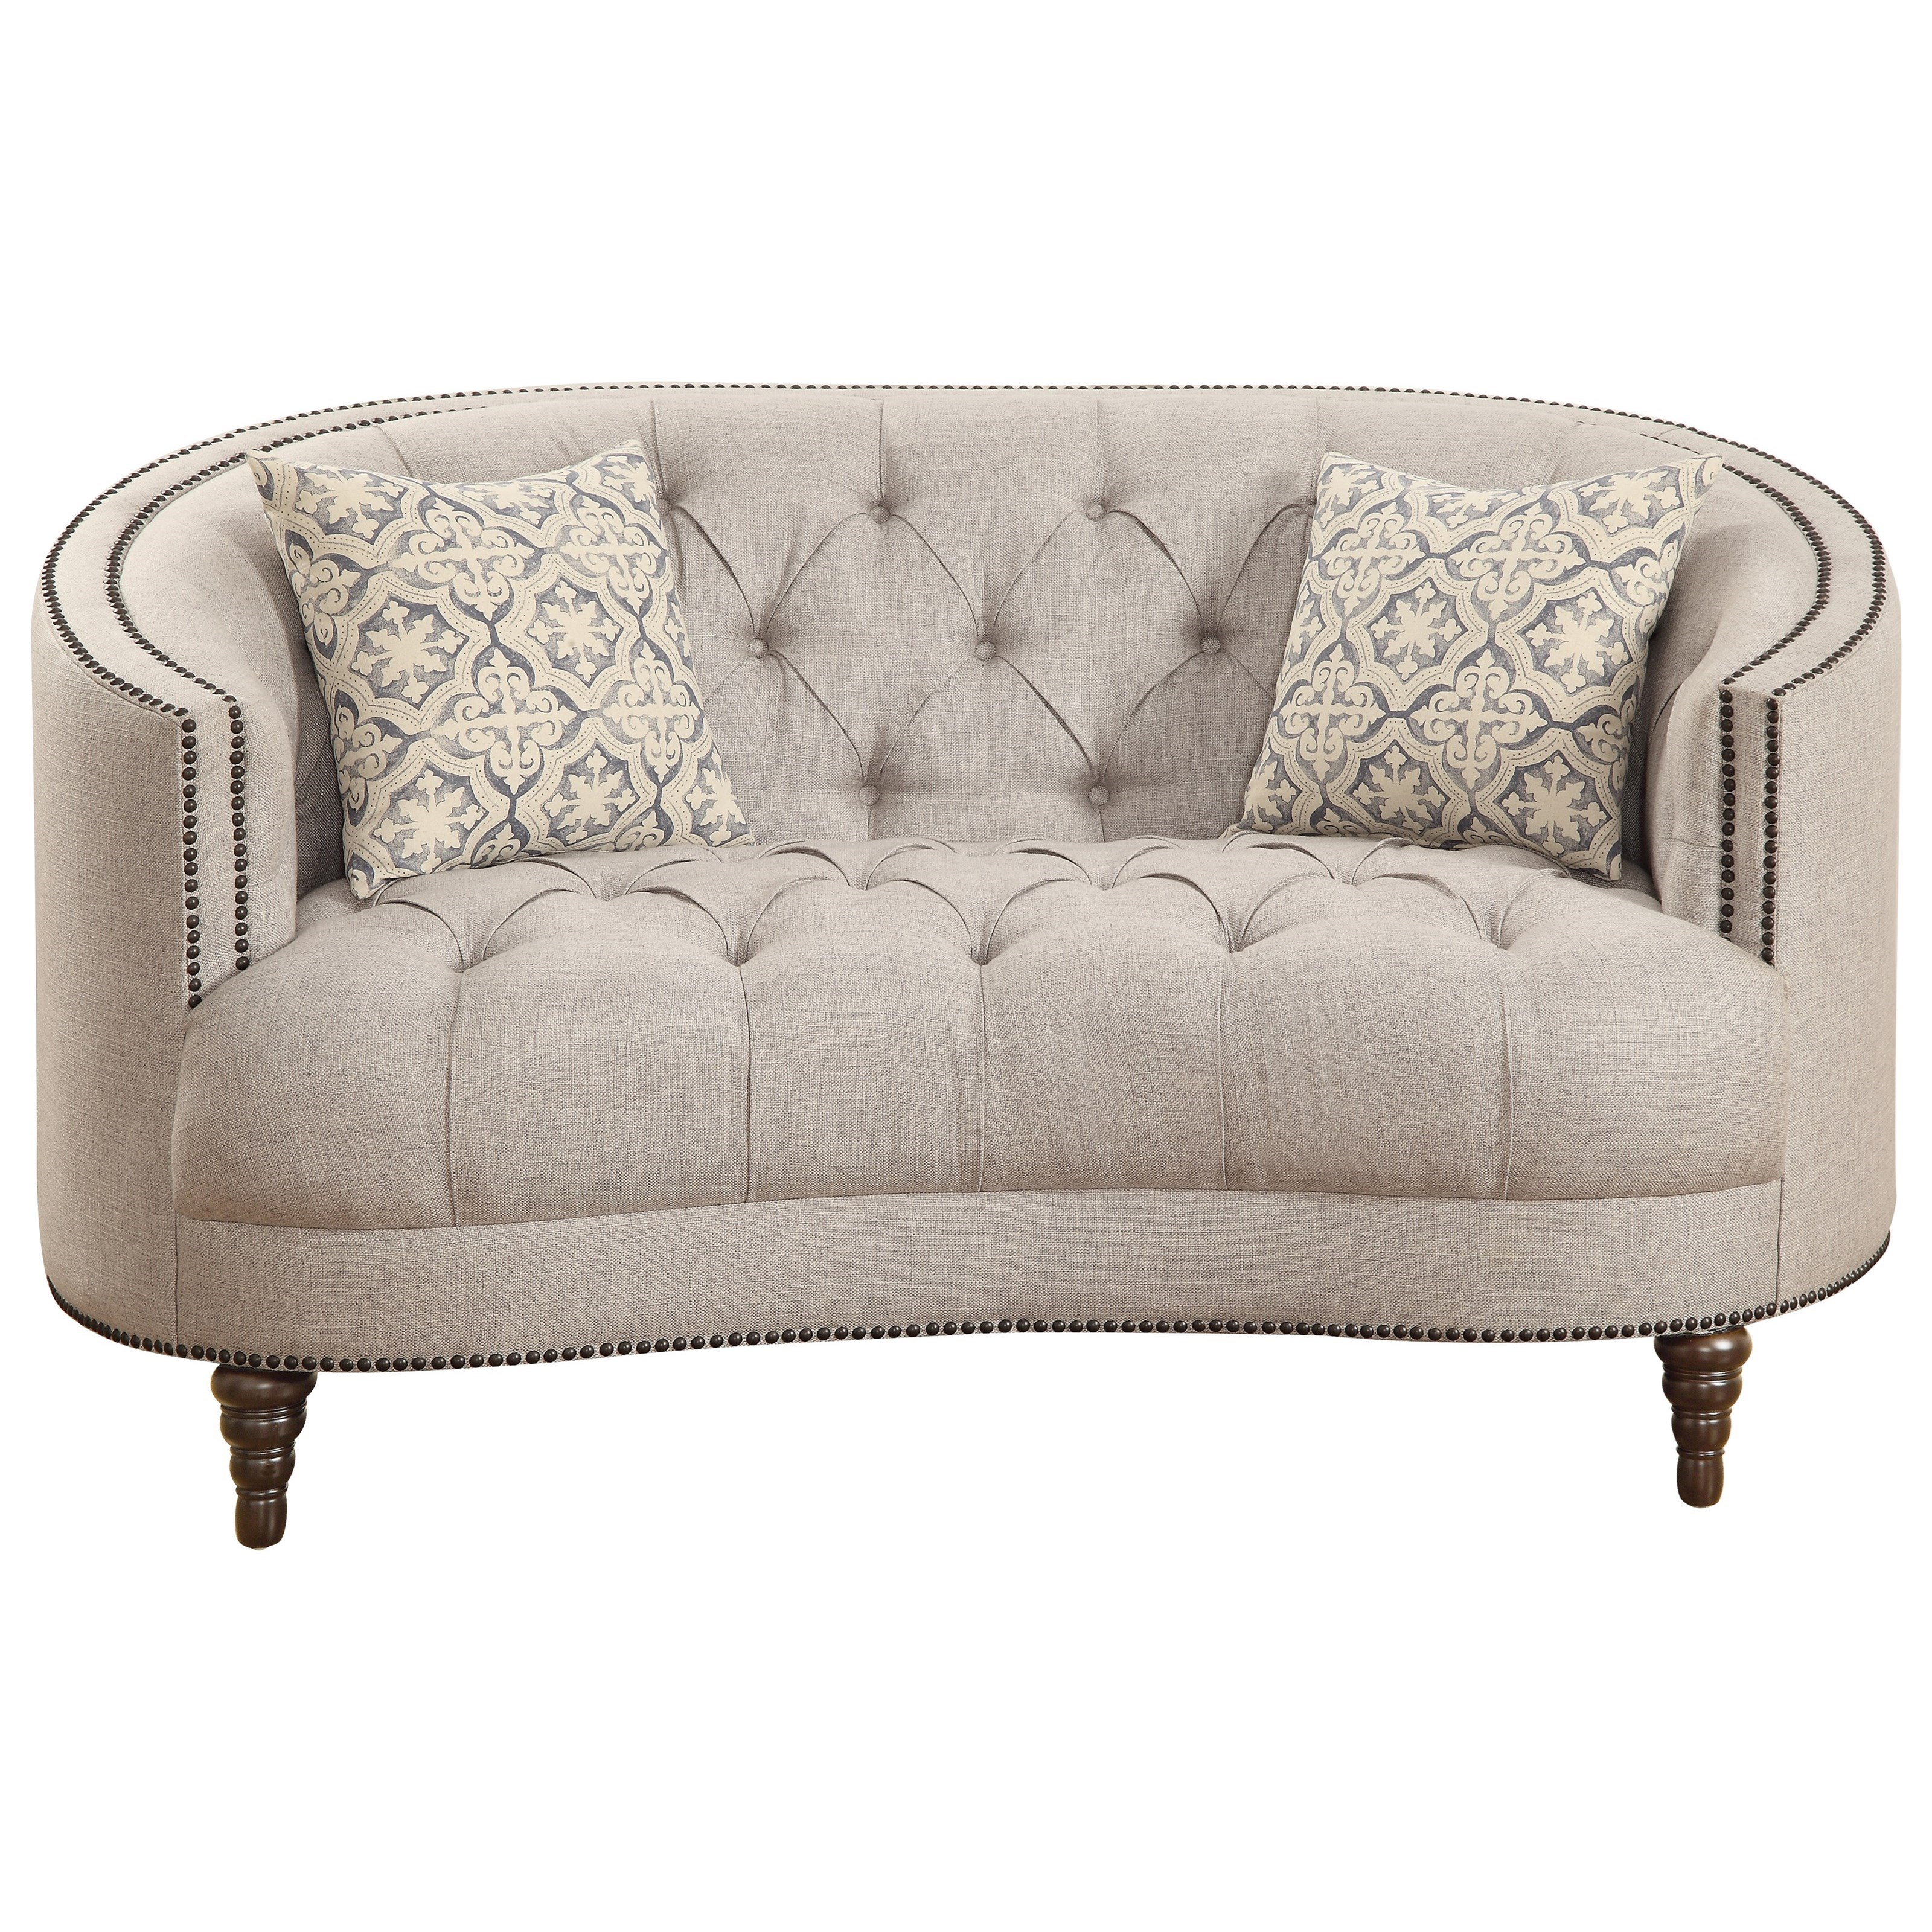 Avonlea Loveseat by Coaster at Value City Furniture